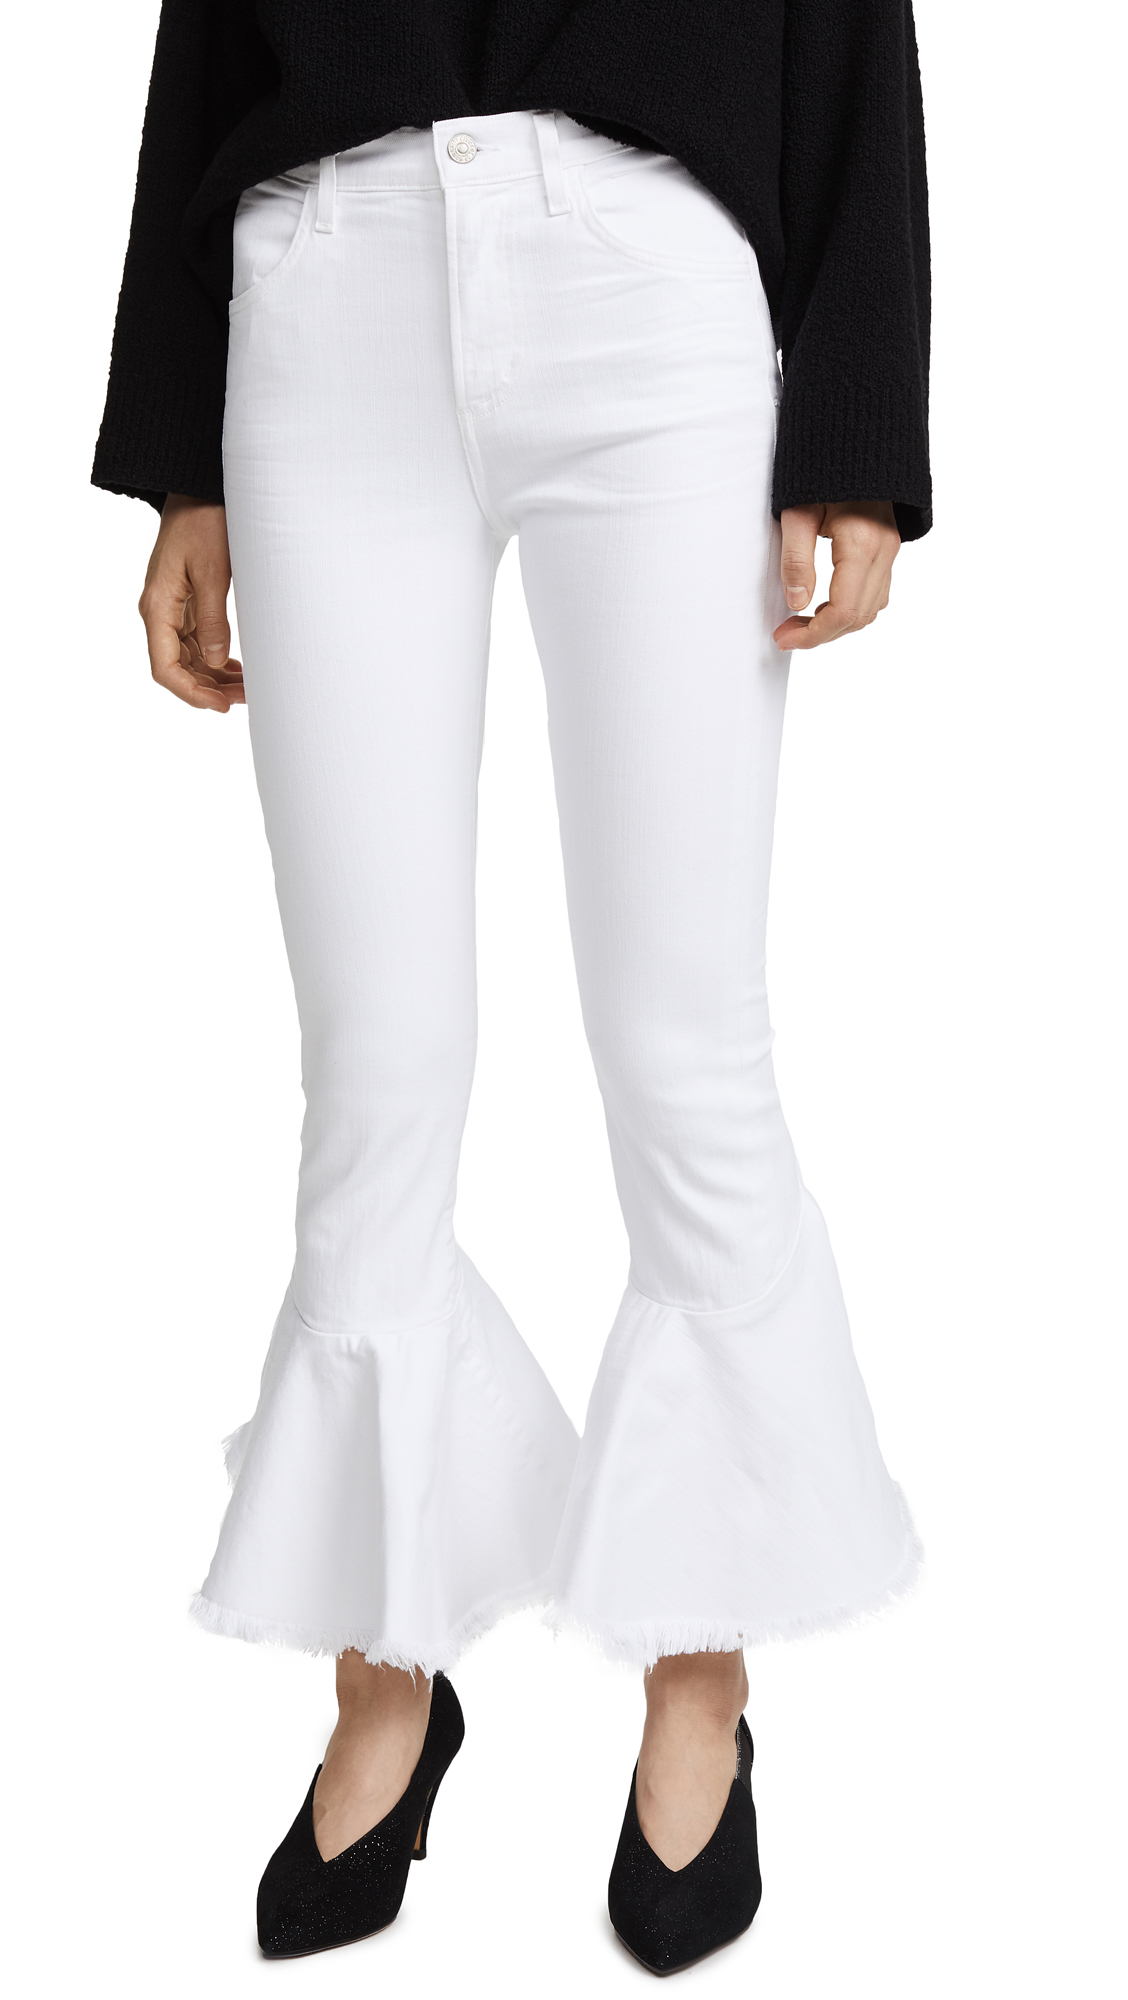 Citizens of Humanity Drew Flounce Jeans - Optic White